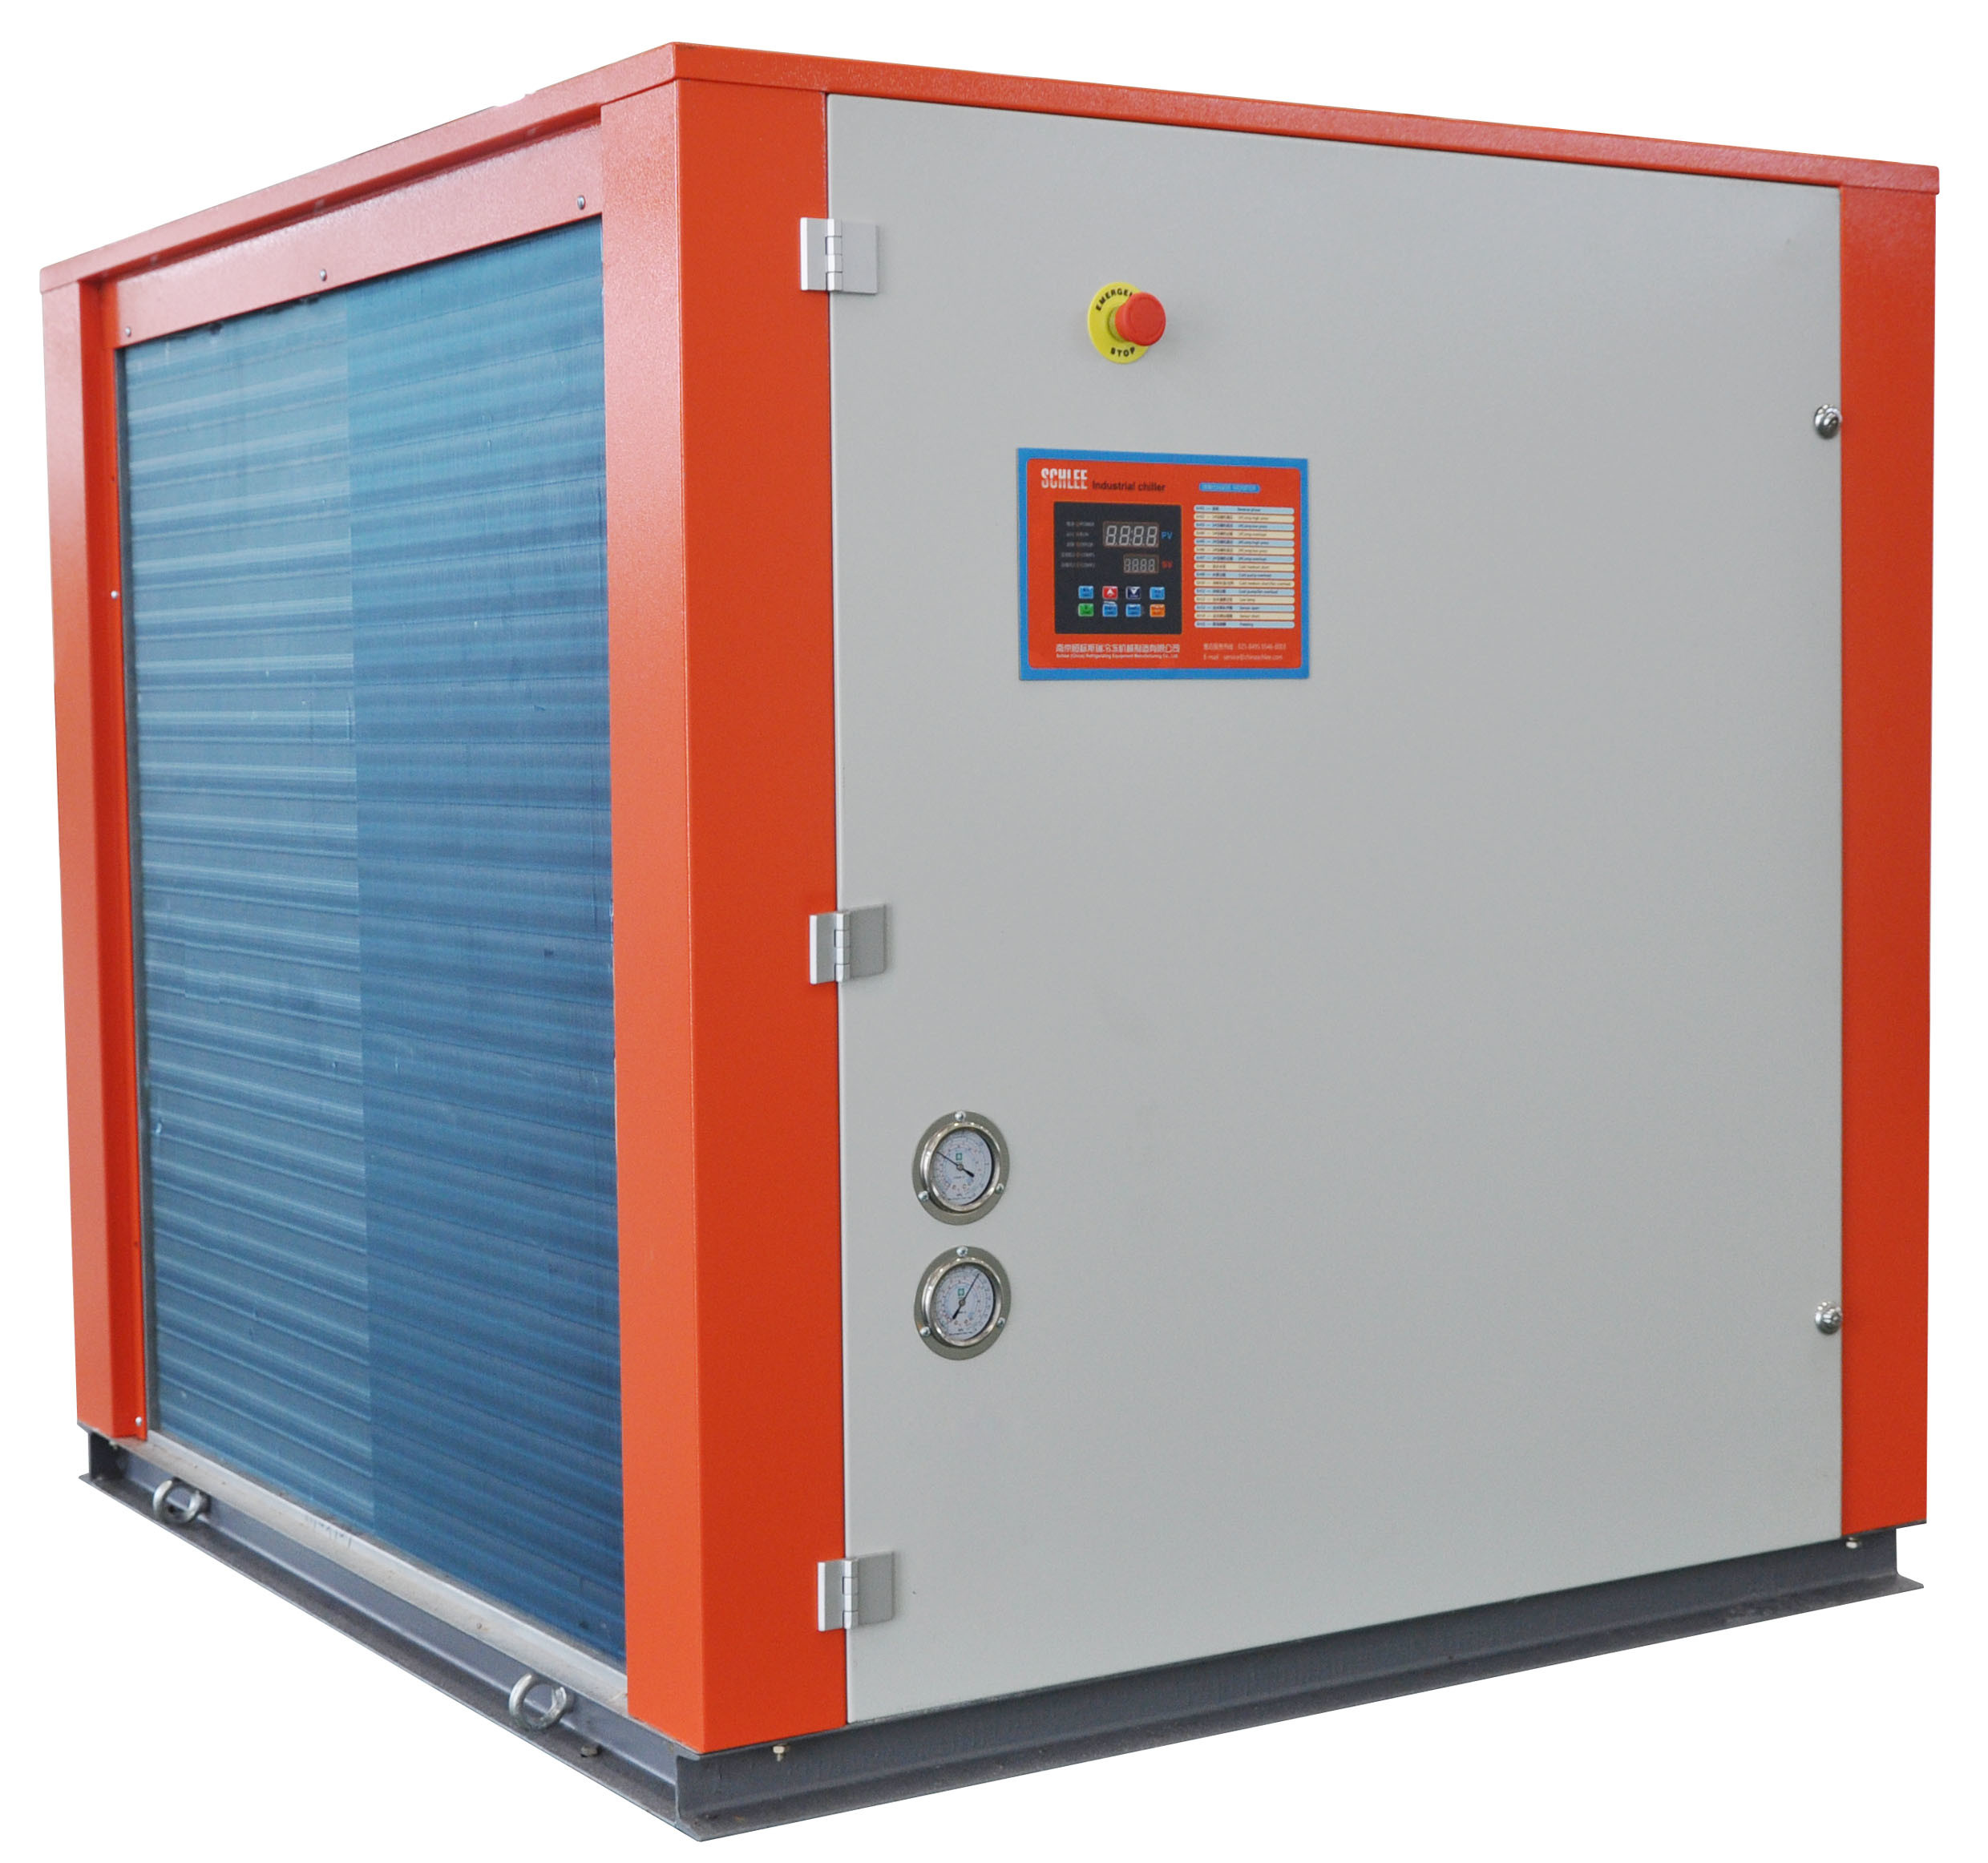 7.8kw Industrial Air Cooled Water Chillers with Scroll Compressor for Beer Fermentation Tank